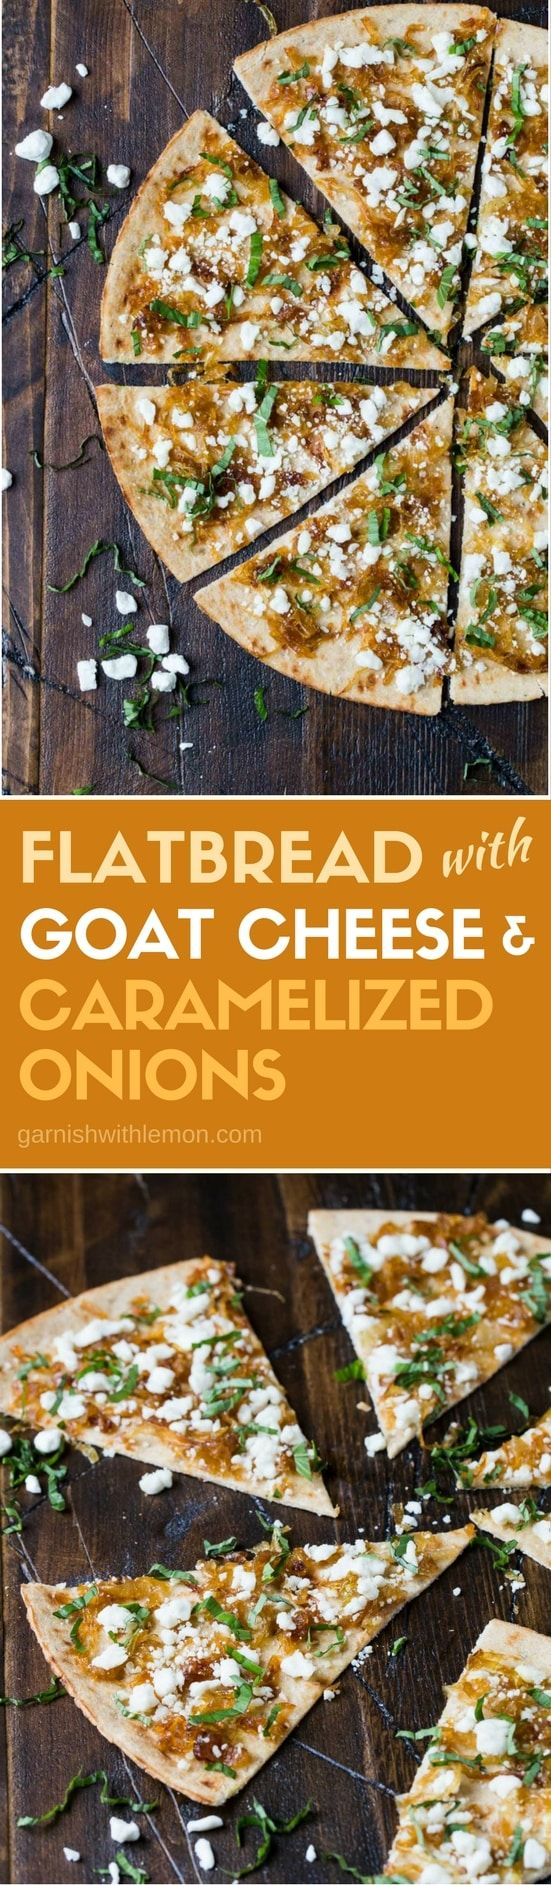 Did you know you can freeze caramelized onions? Make extra and freeze the rest so you can make this recipe for Flatbread with Goat Cheese and Caramelized Onions any time. Makes a great appetizer for parties!